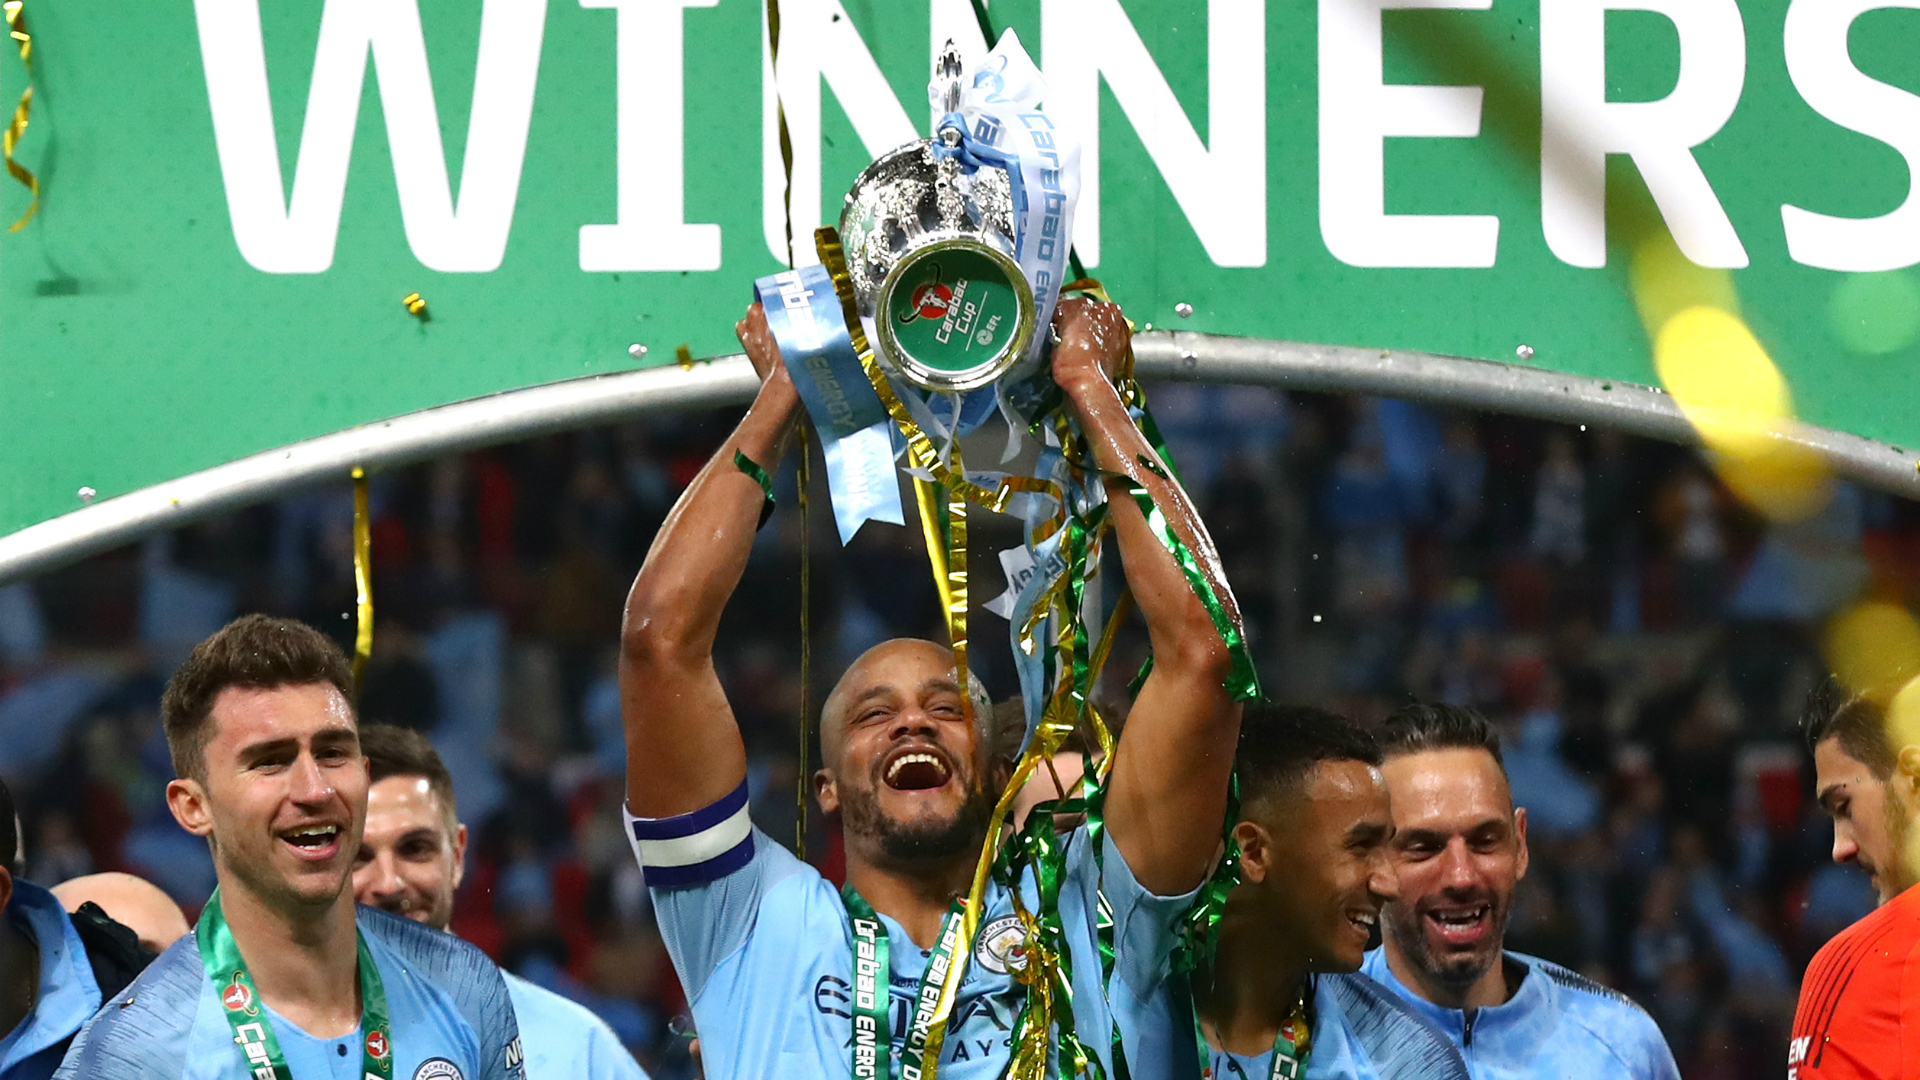 BREAKING NEWS: City to face United in Manchester derby in EFL Cup semi-finals